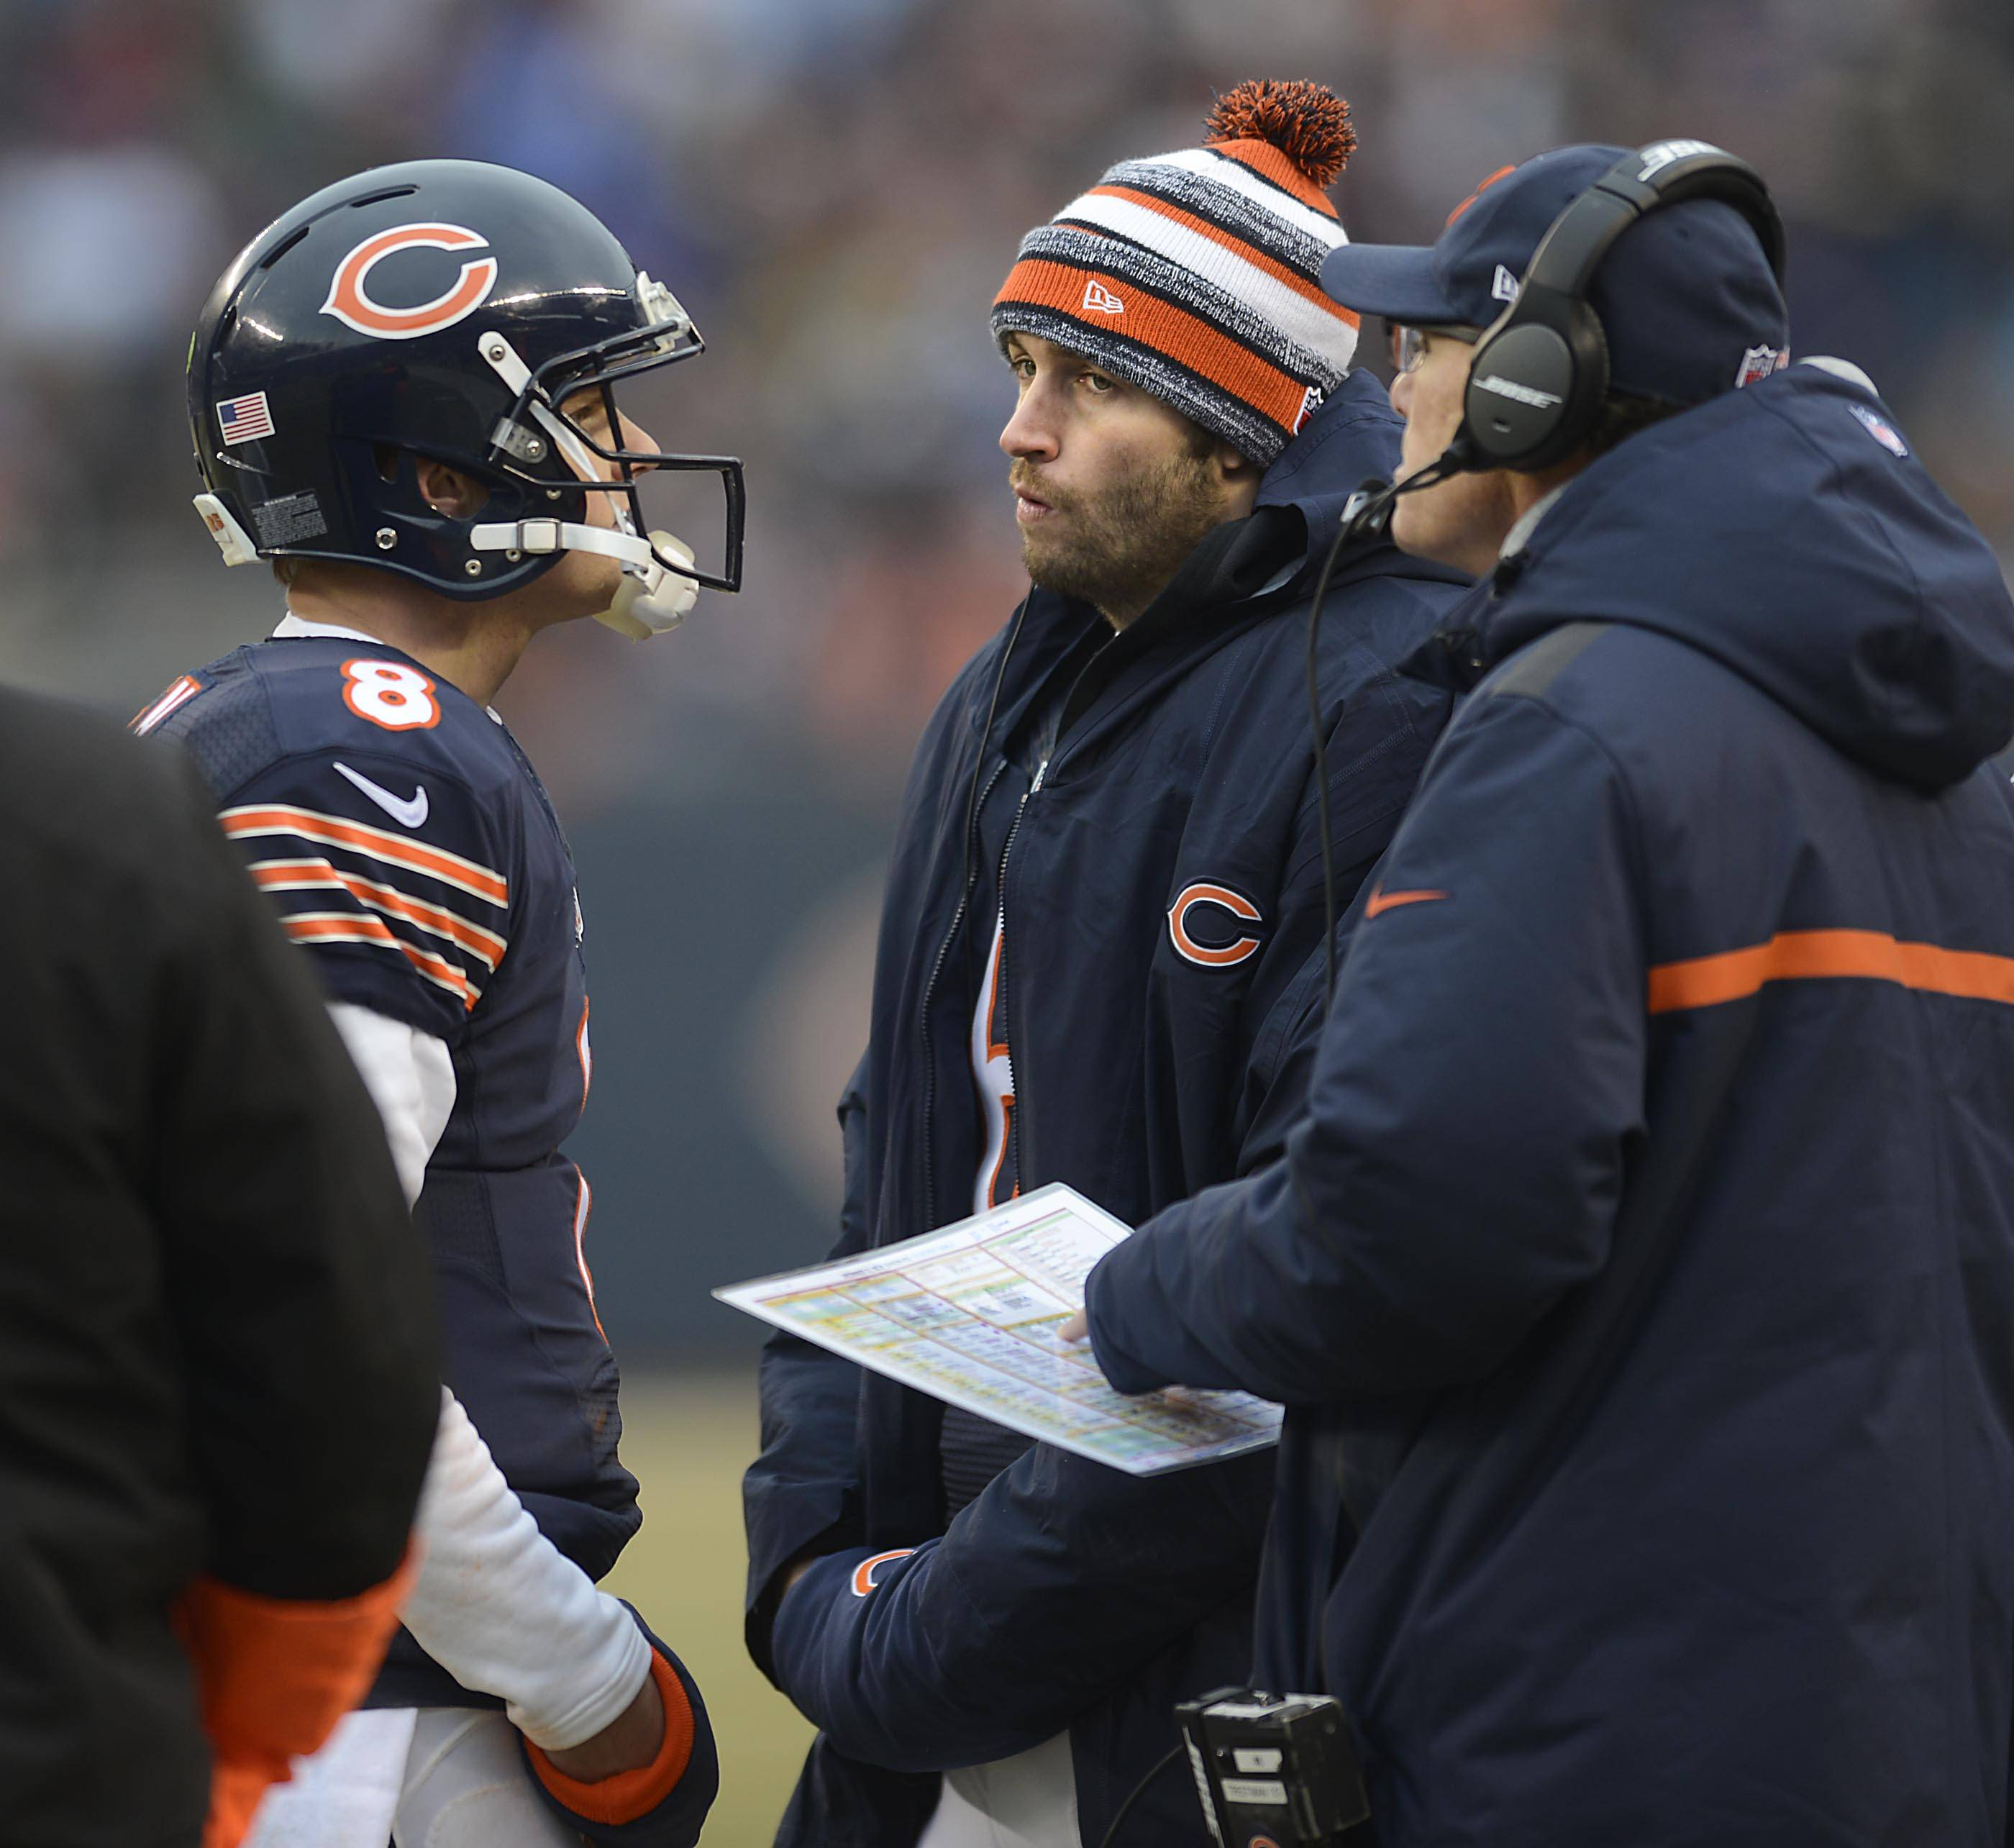 Bears quarterback Jay Cutler reacts as he listens to a conversation between Jimmy Clausen and coach Marc Trestman late in the first half Sunday at Soldier Field in Chicago.